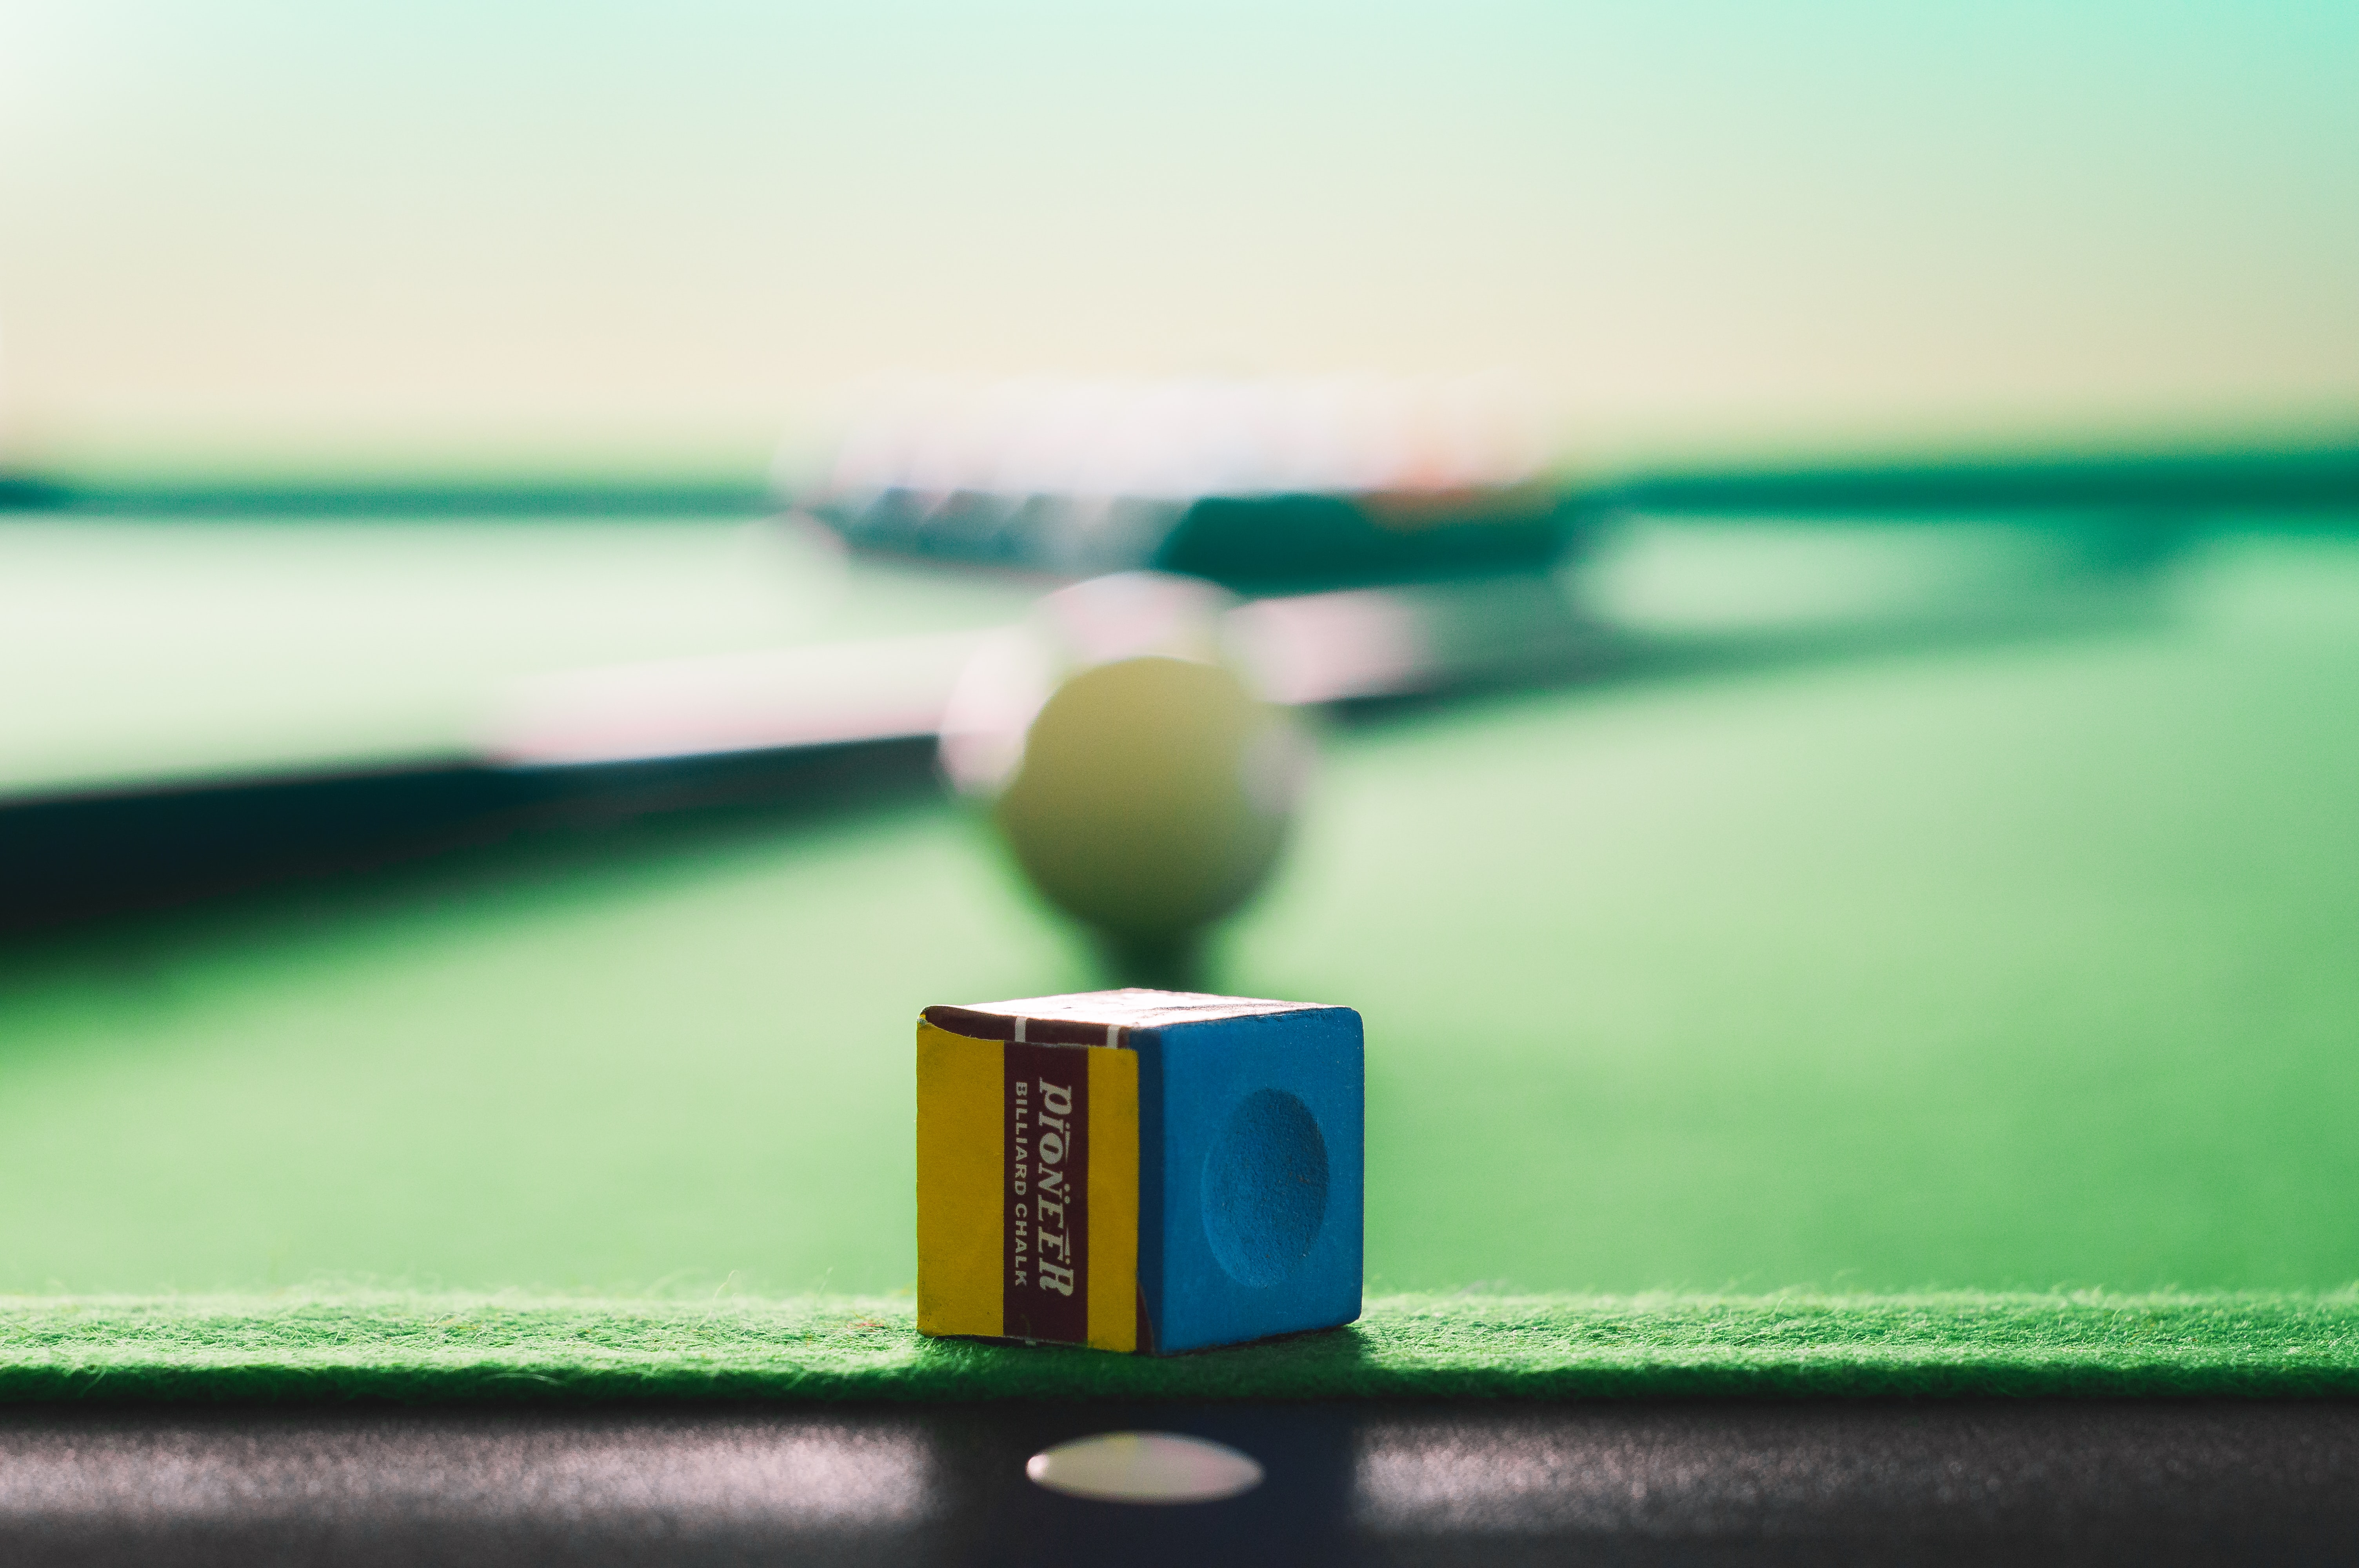 yellow and blue cue stick chalk on green and black pool table